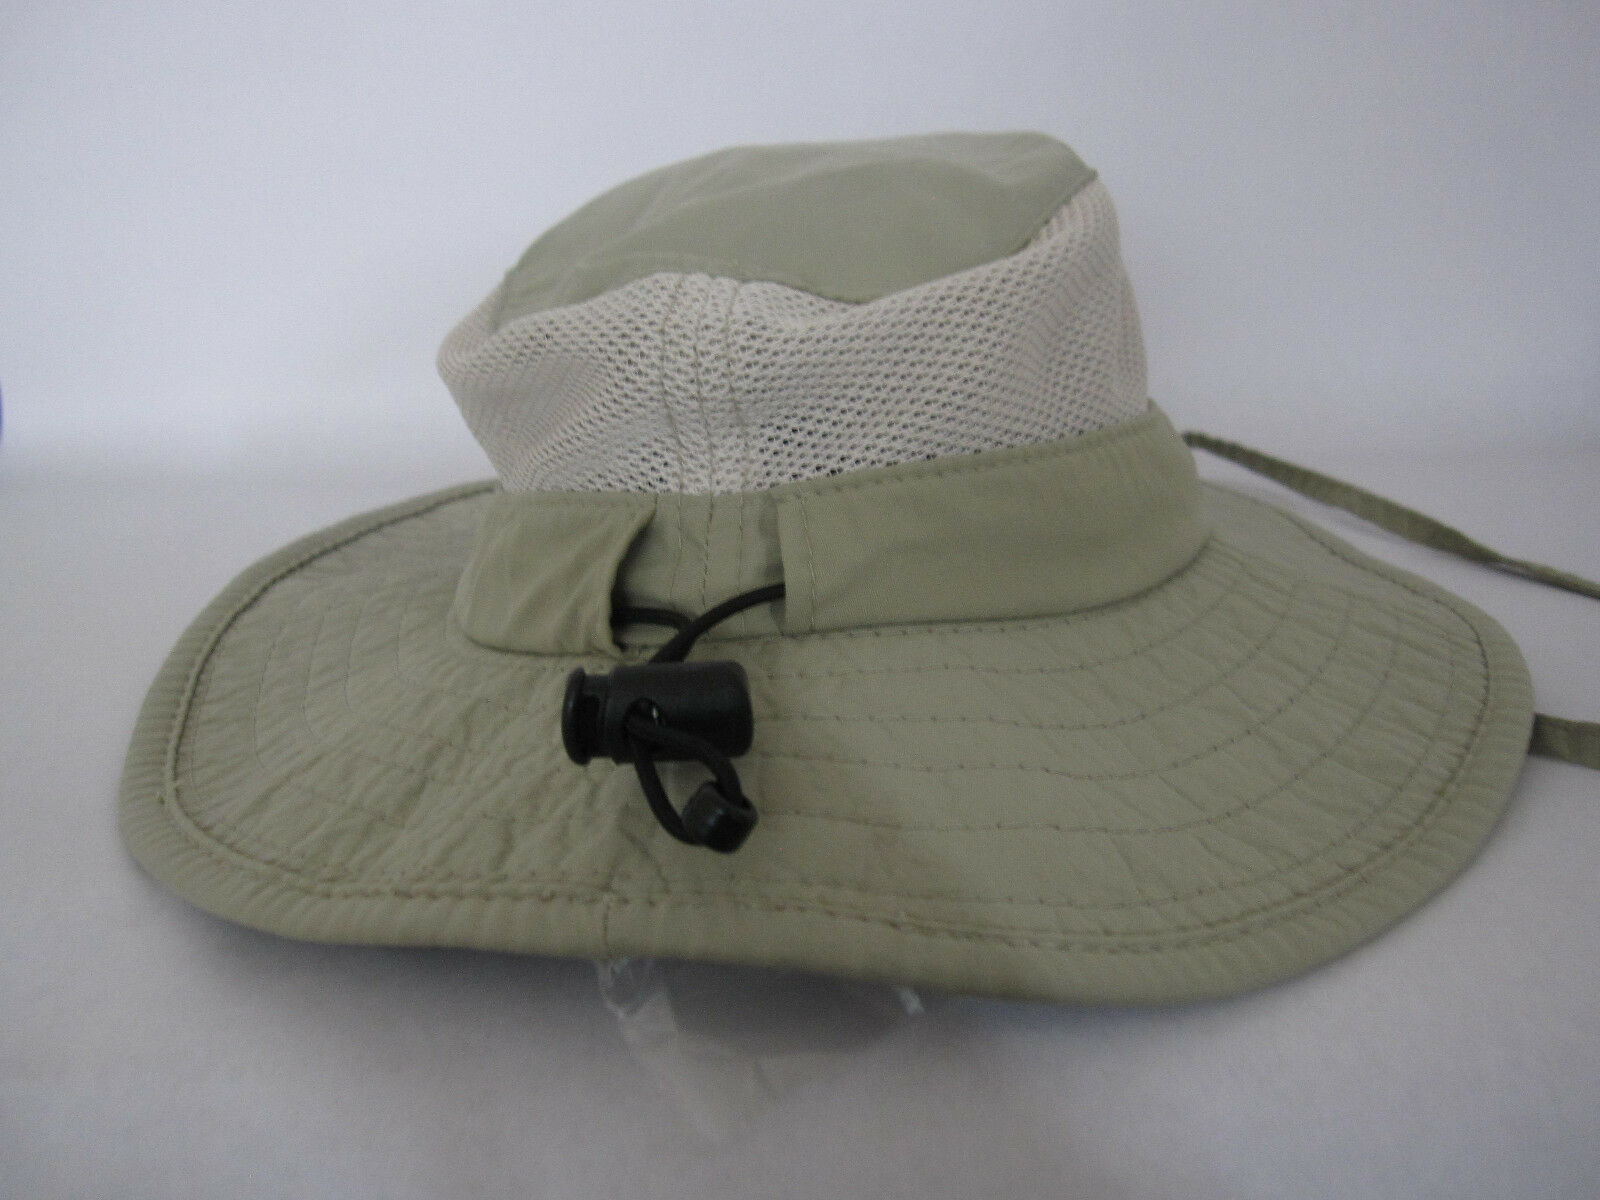 Dorfman Pacific Co DPC Fishing/Outdoor/Camping Vented Nylon Bucket Hat Sz S image 3